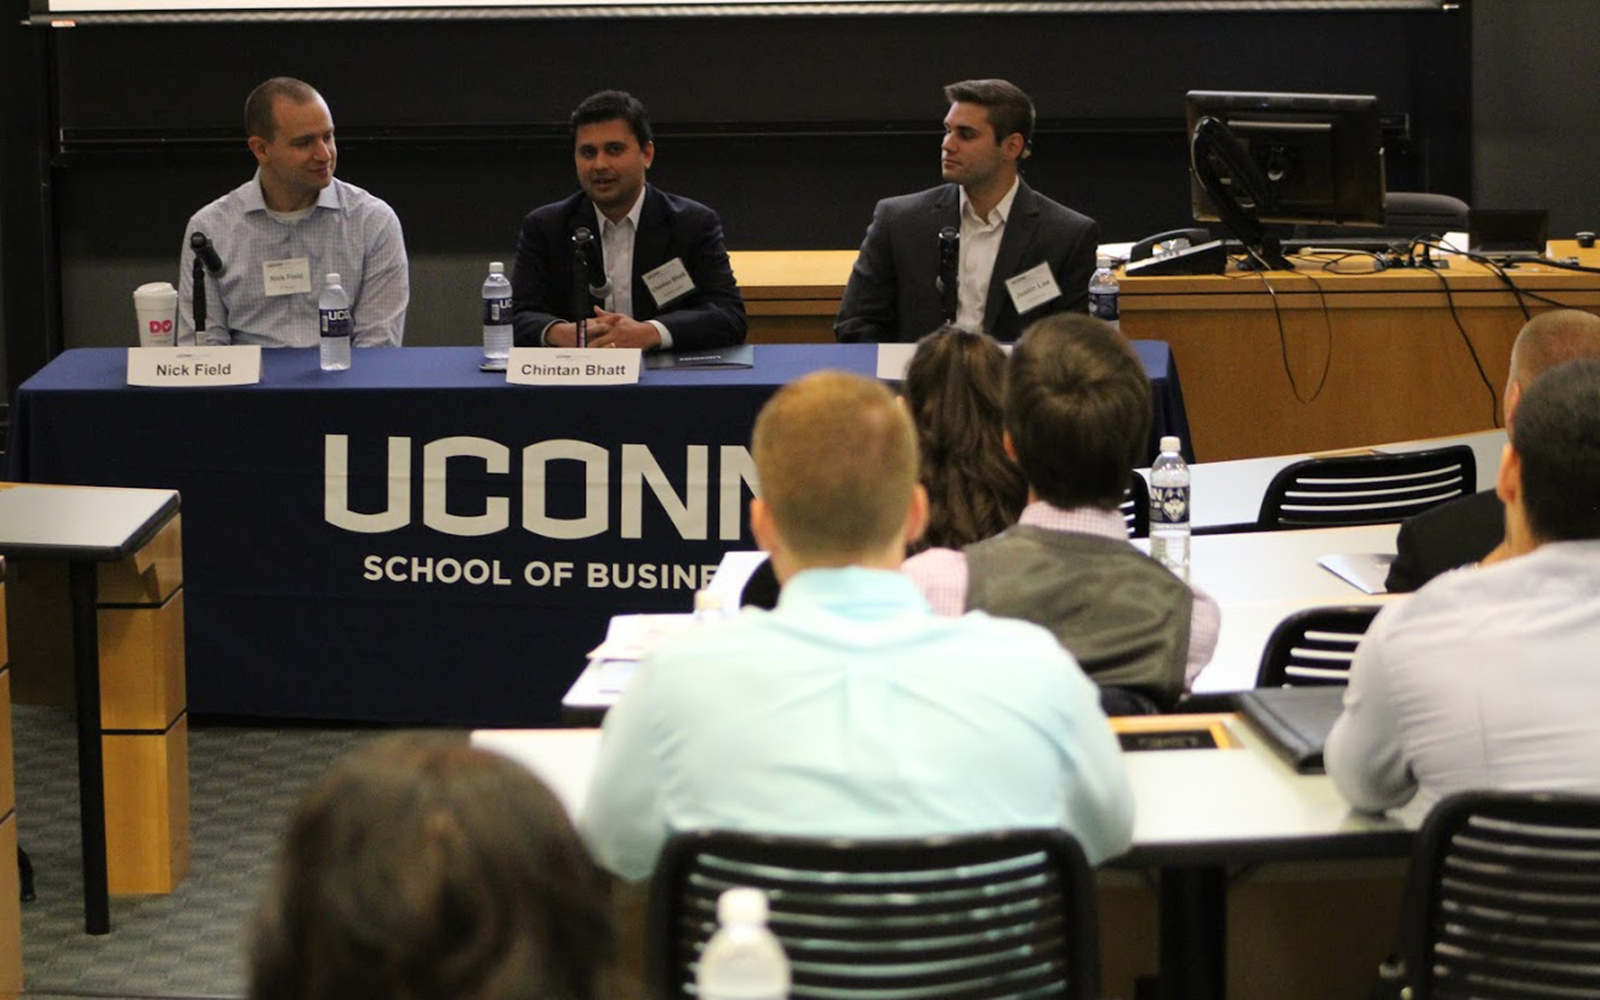 Careers in investments, asset management, banking and prestigious Wall Street opportunities were the focus of the inaugural Finance Conference at the School of Business. (Joshua Weist/UConn School of Business)